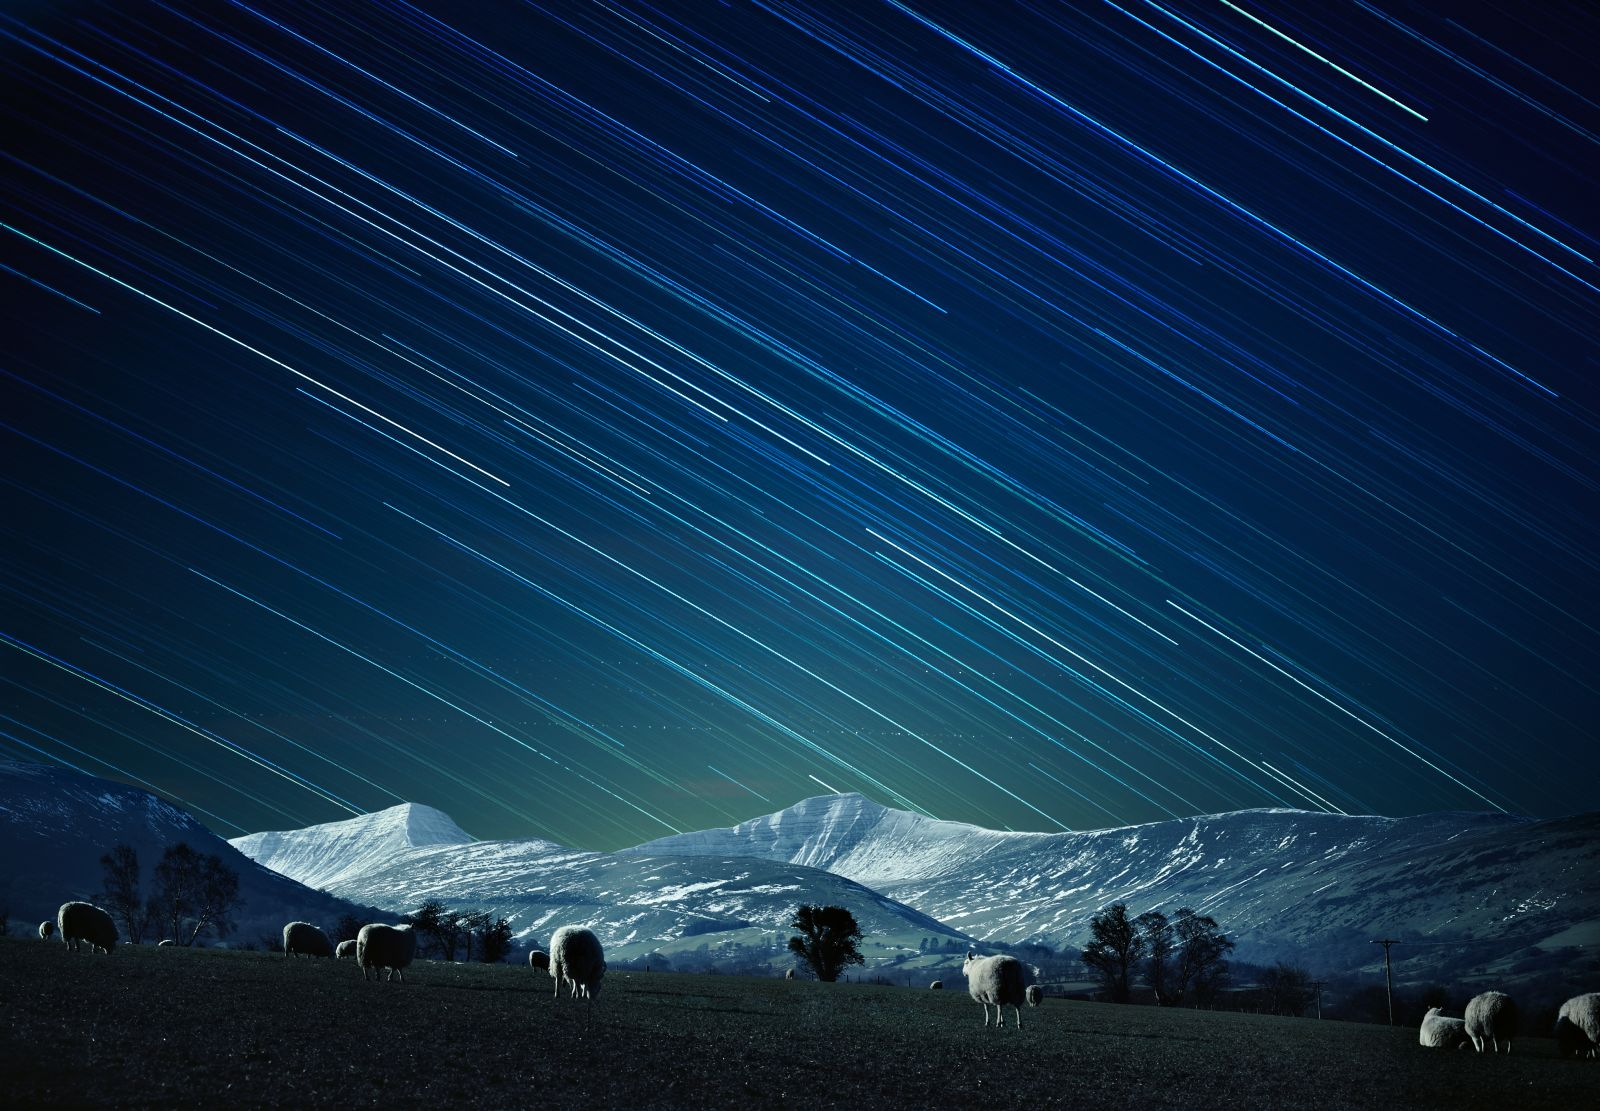 Dark skies in the Brecon Beacons National Park. Photo credit: Michael Sinclair